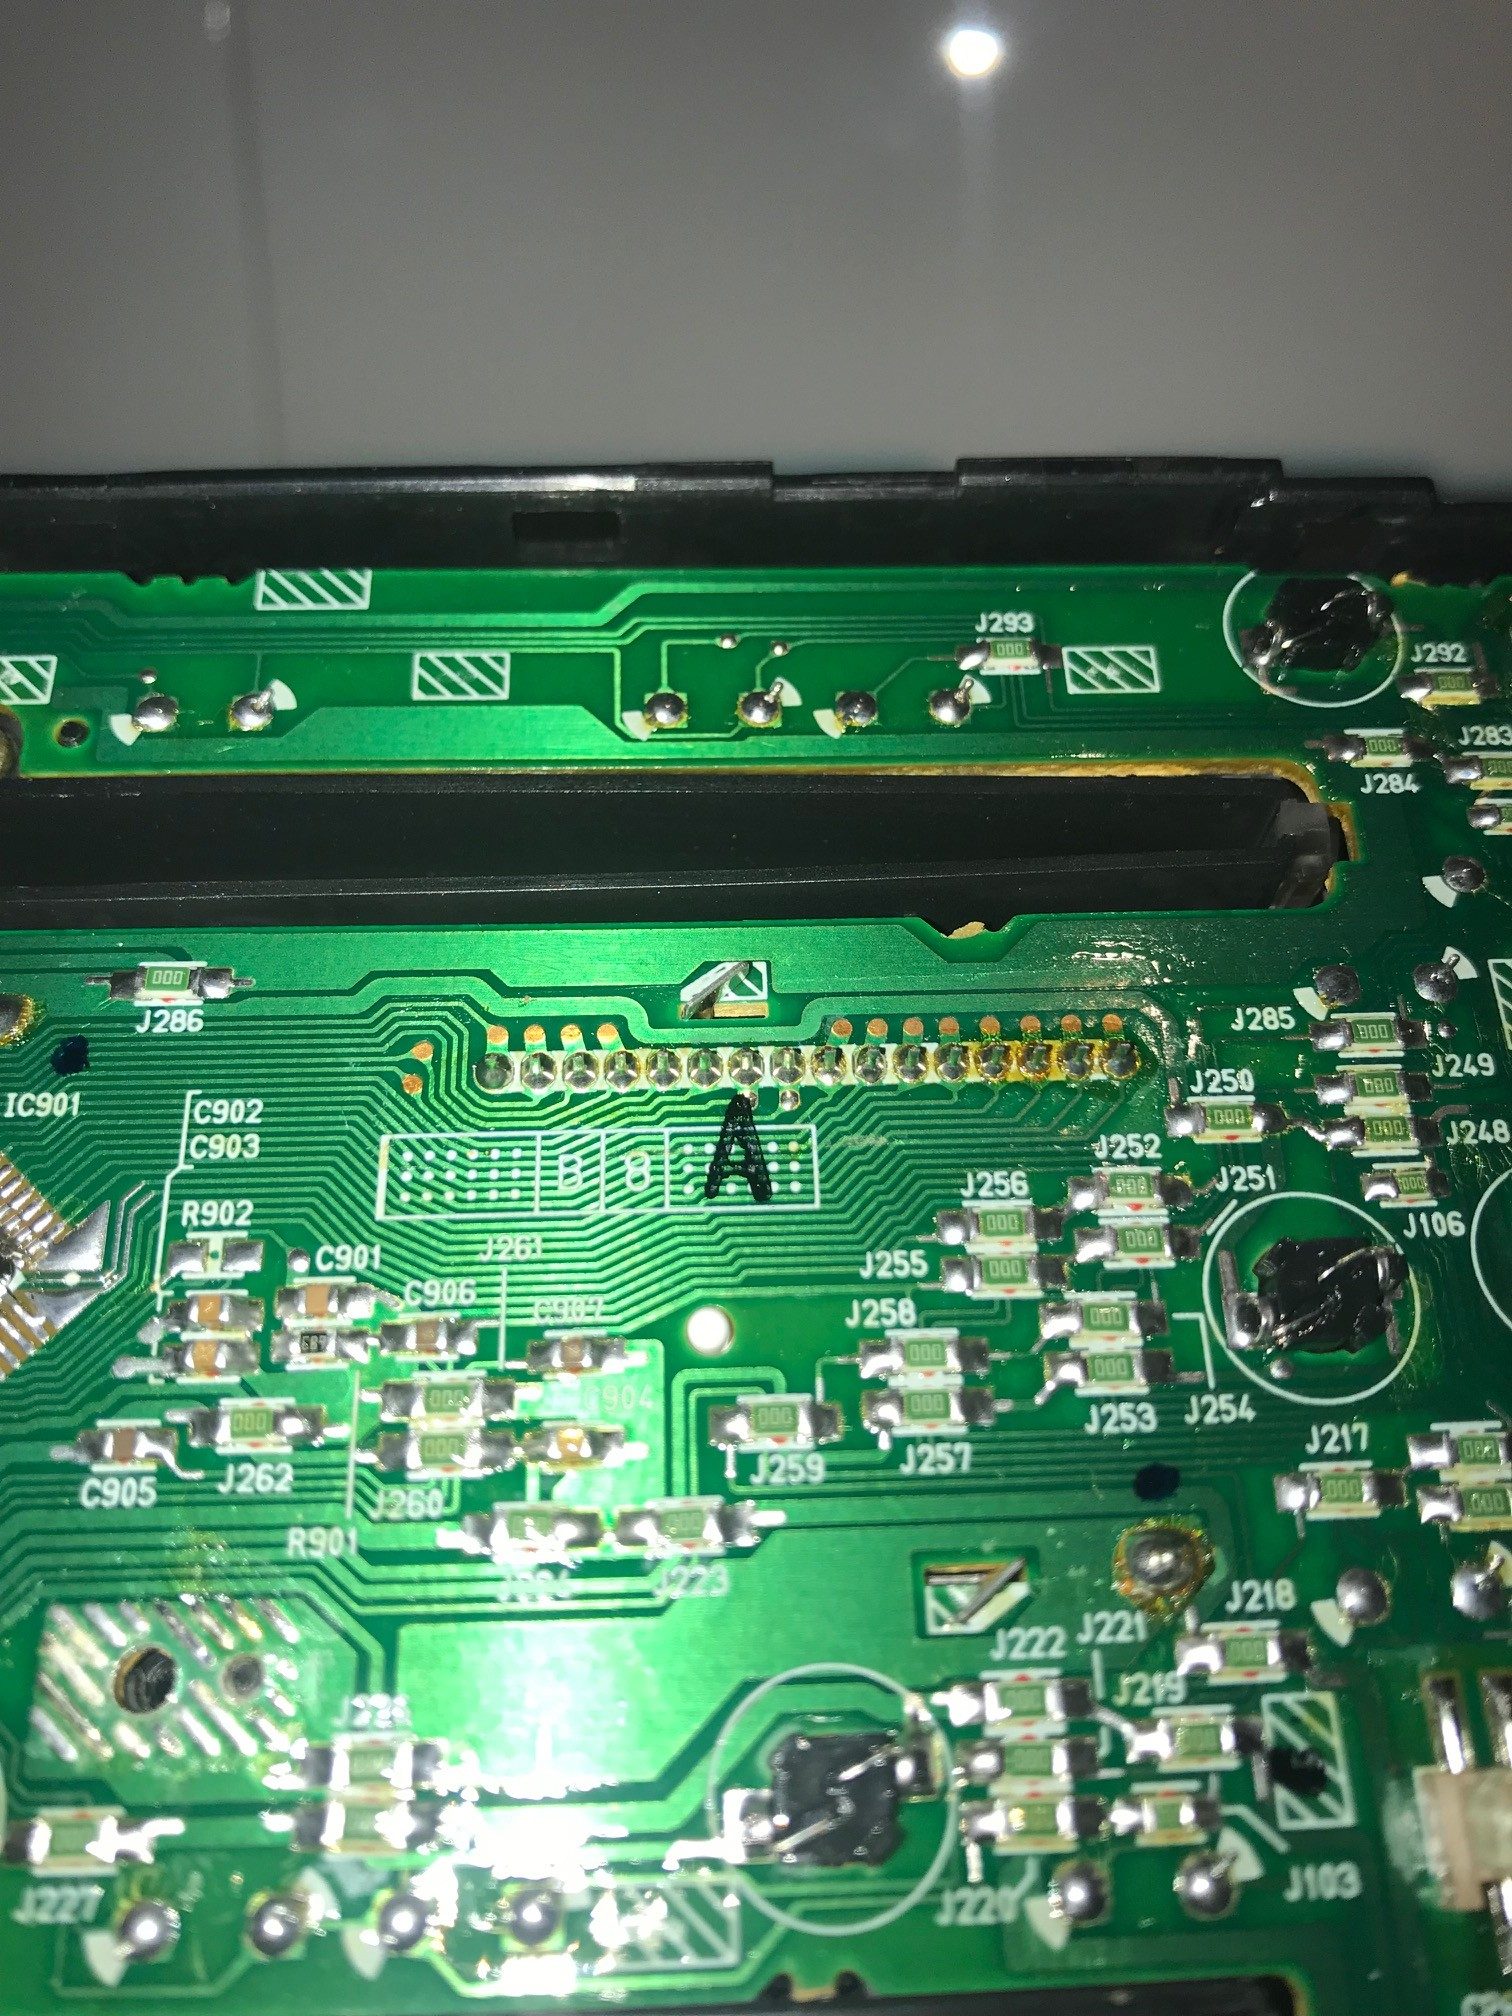 Nb Oem Radio Backlight Fault Mx 5 Miata Forum How To Check A Circuit Board I Cant Separate The From Front Plate Though Hence Access Any Lightbulbs In Order Them